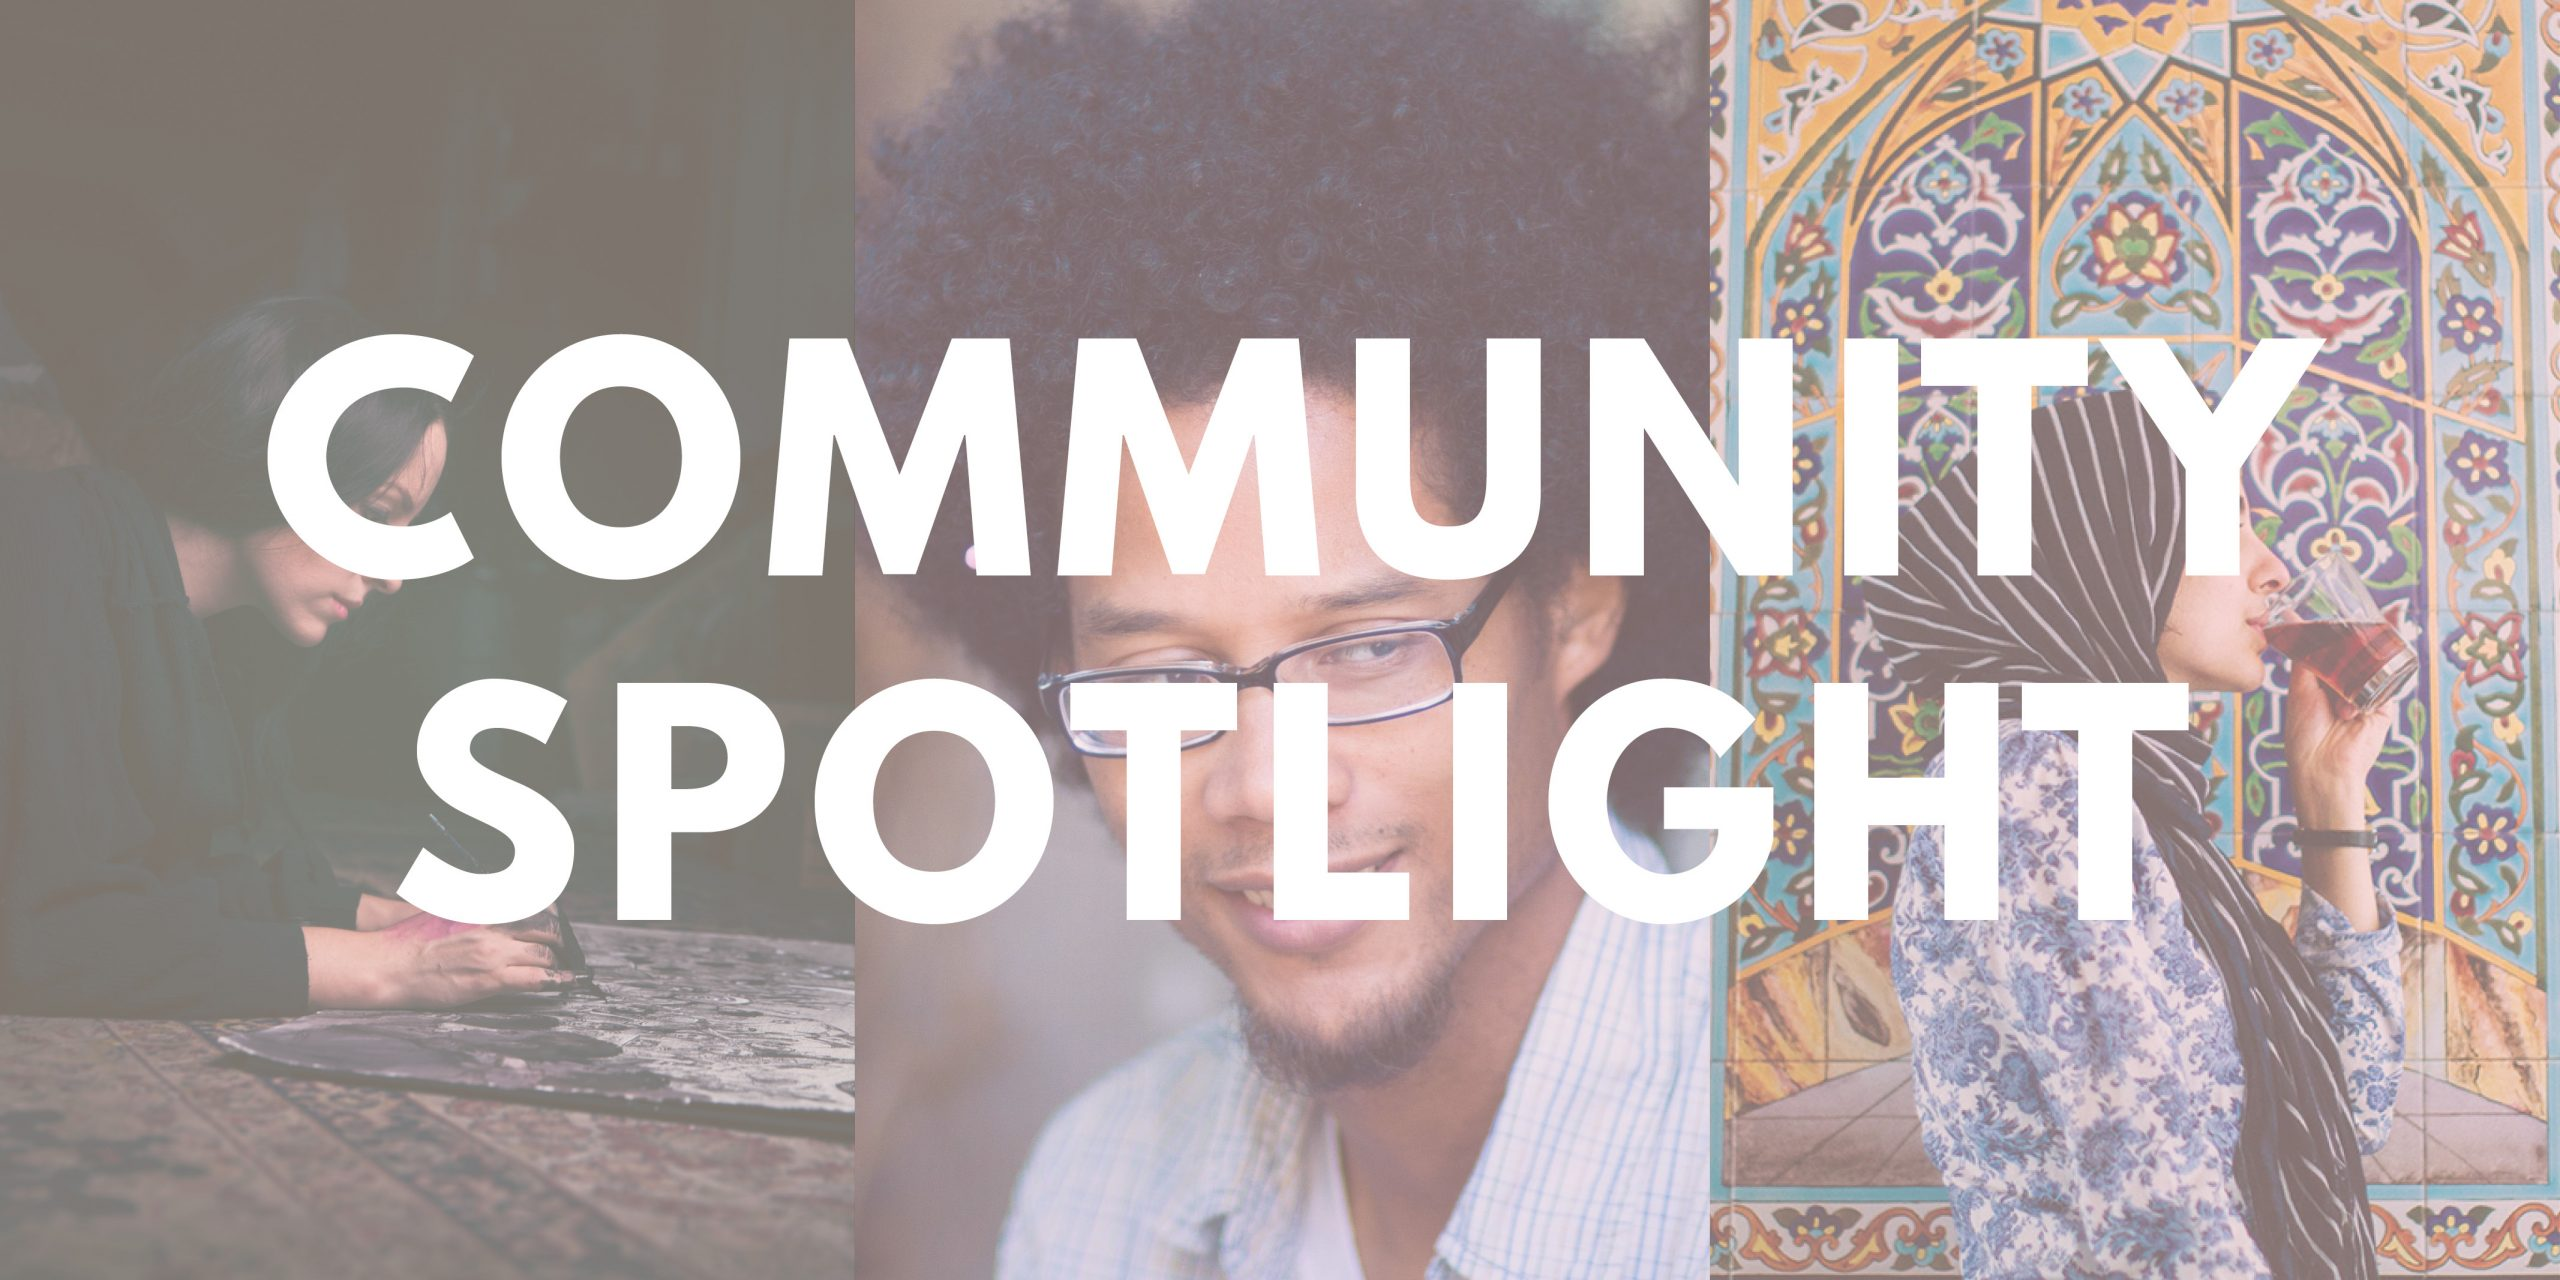 Community Spotlight blog series by Radix Media.